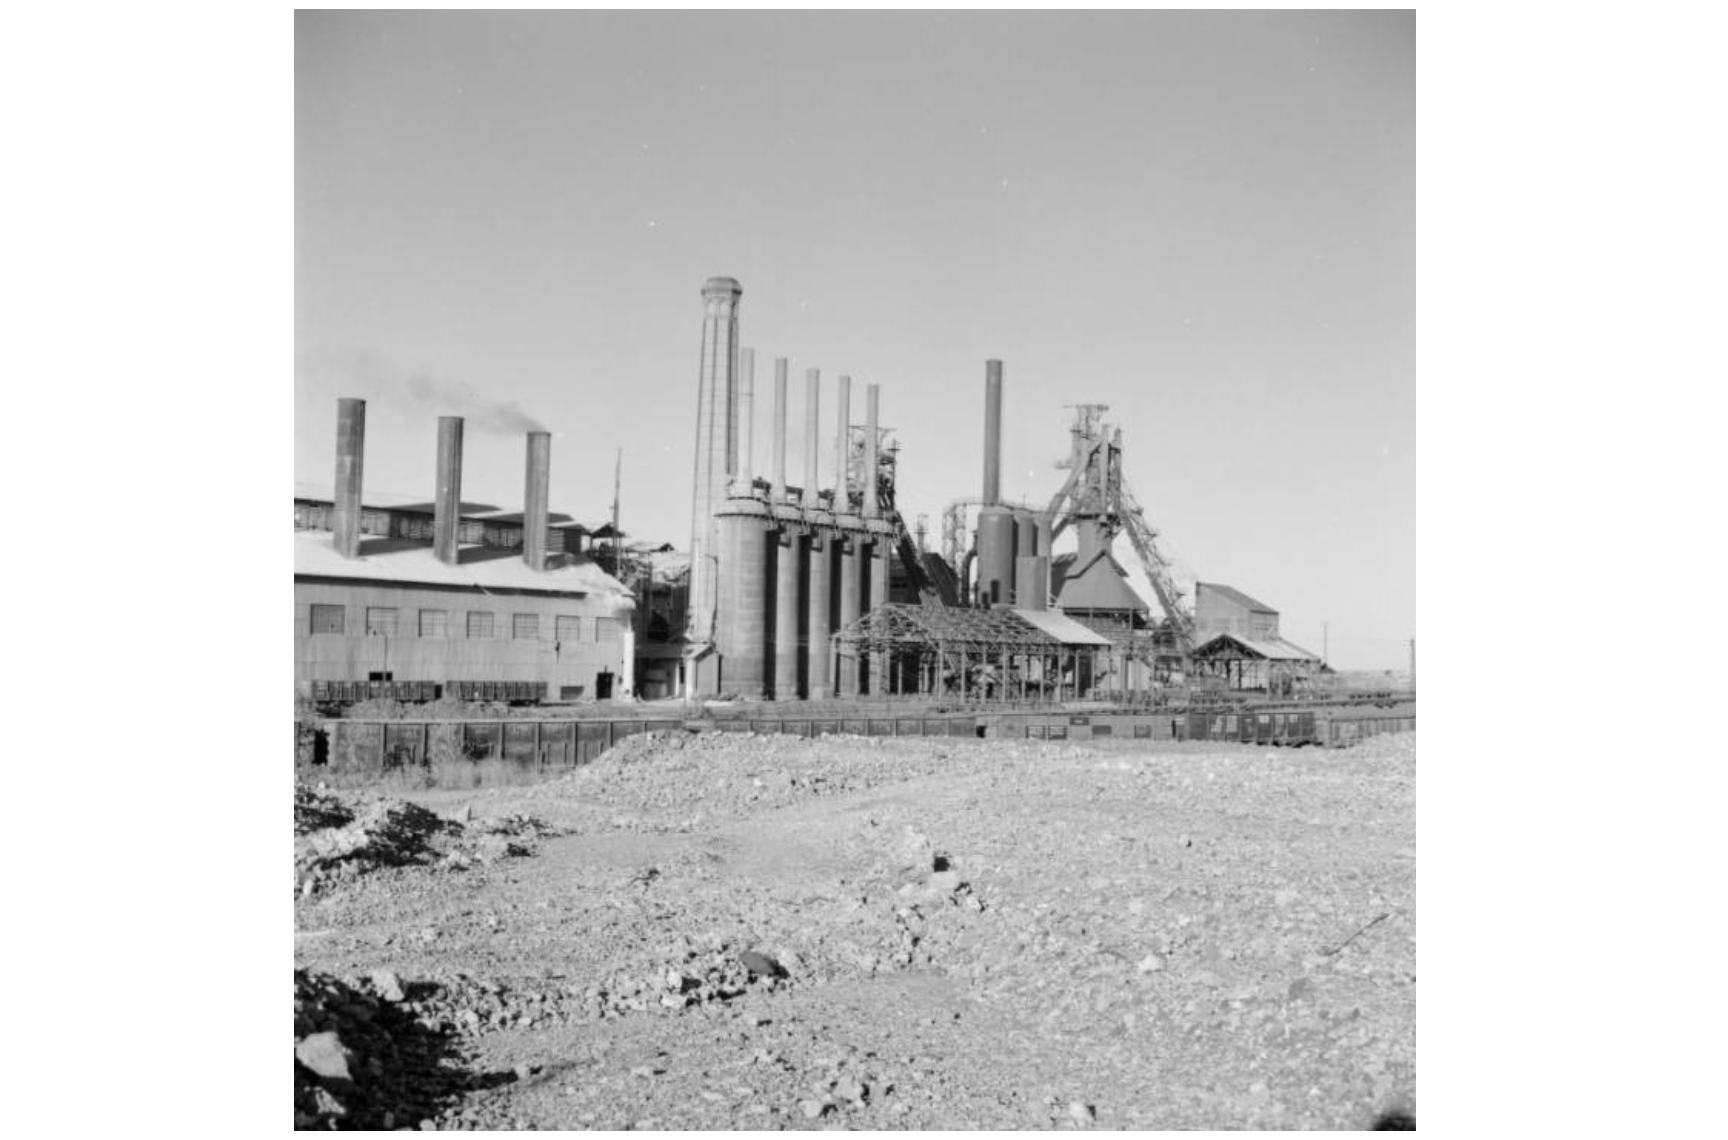 picture of old steel refinery in mexico